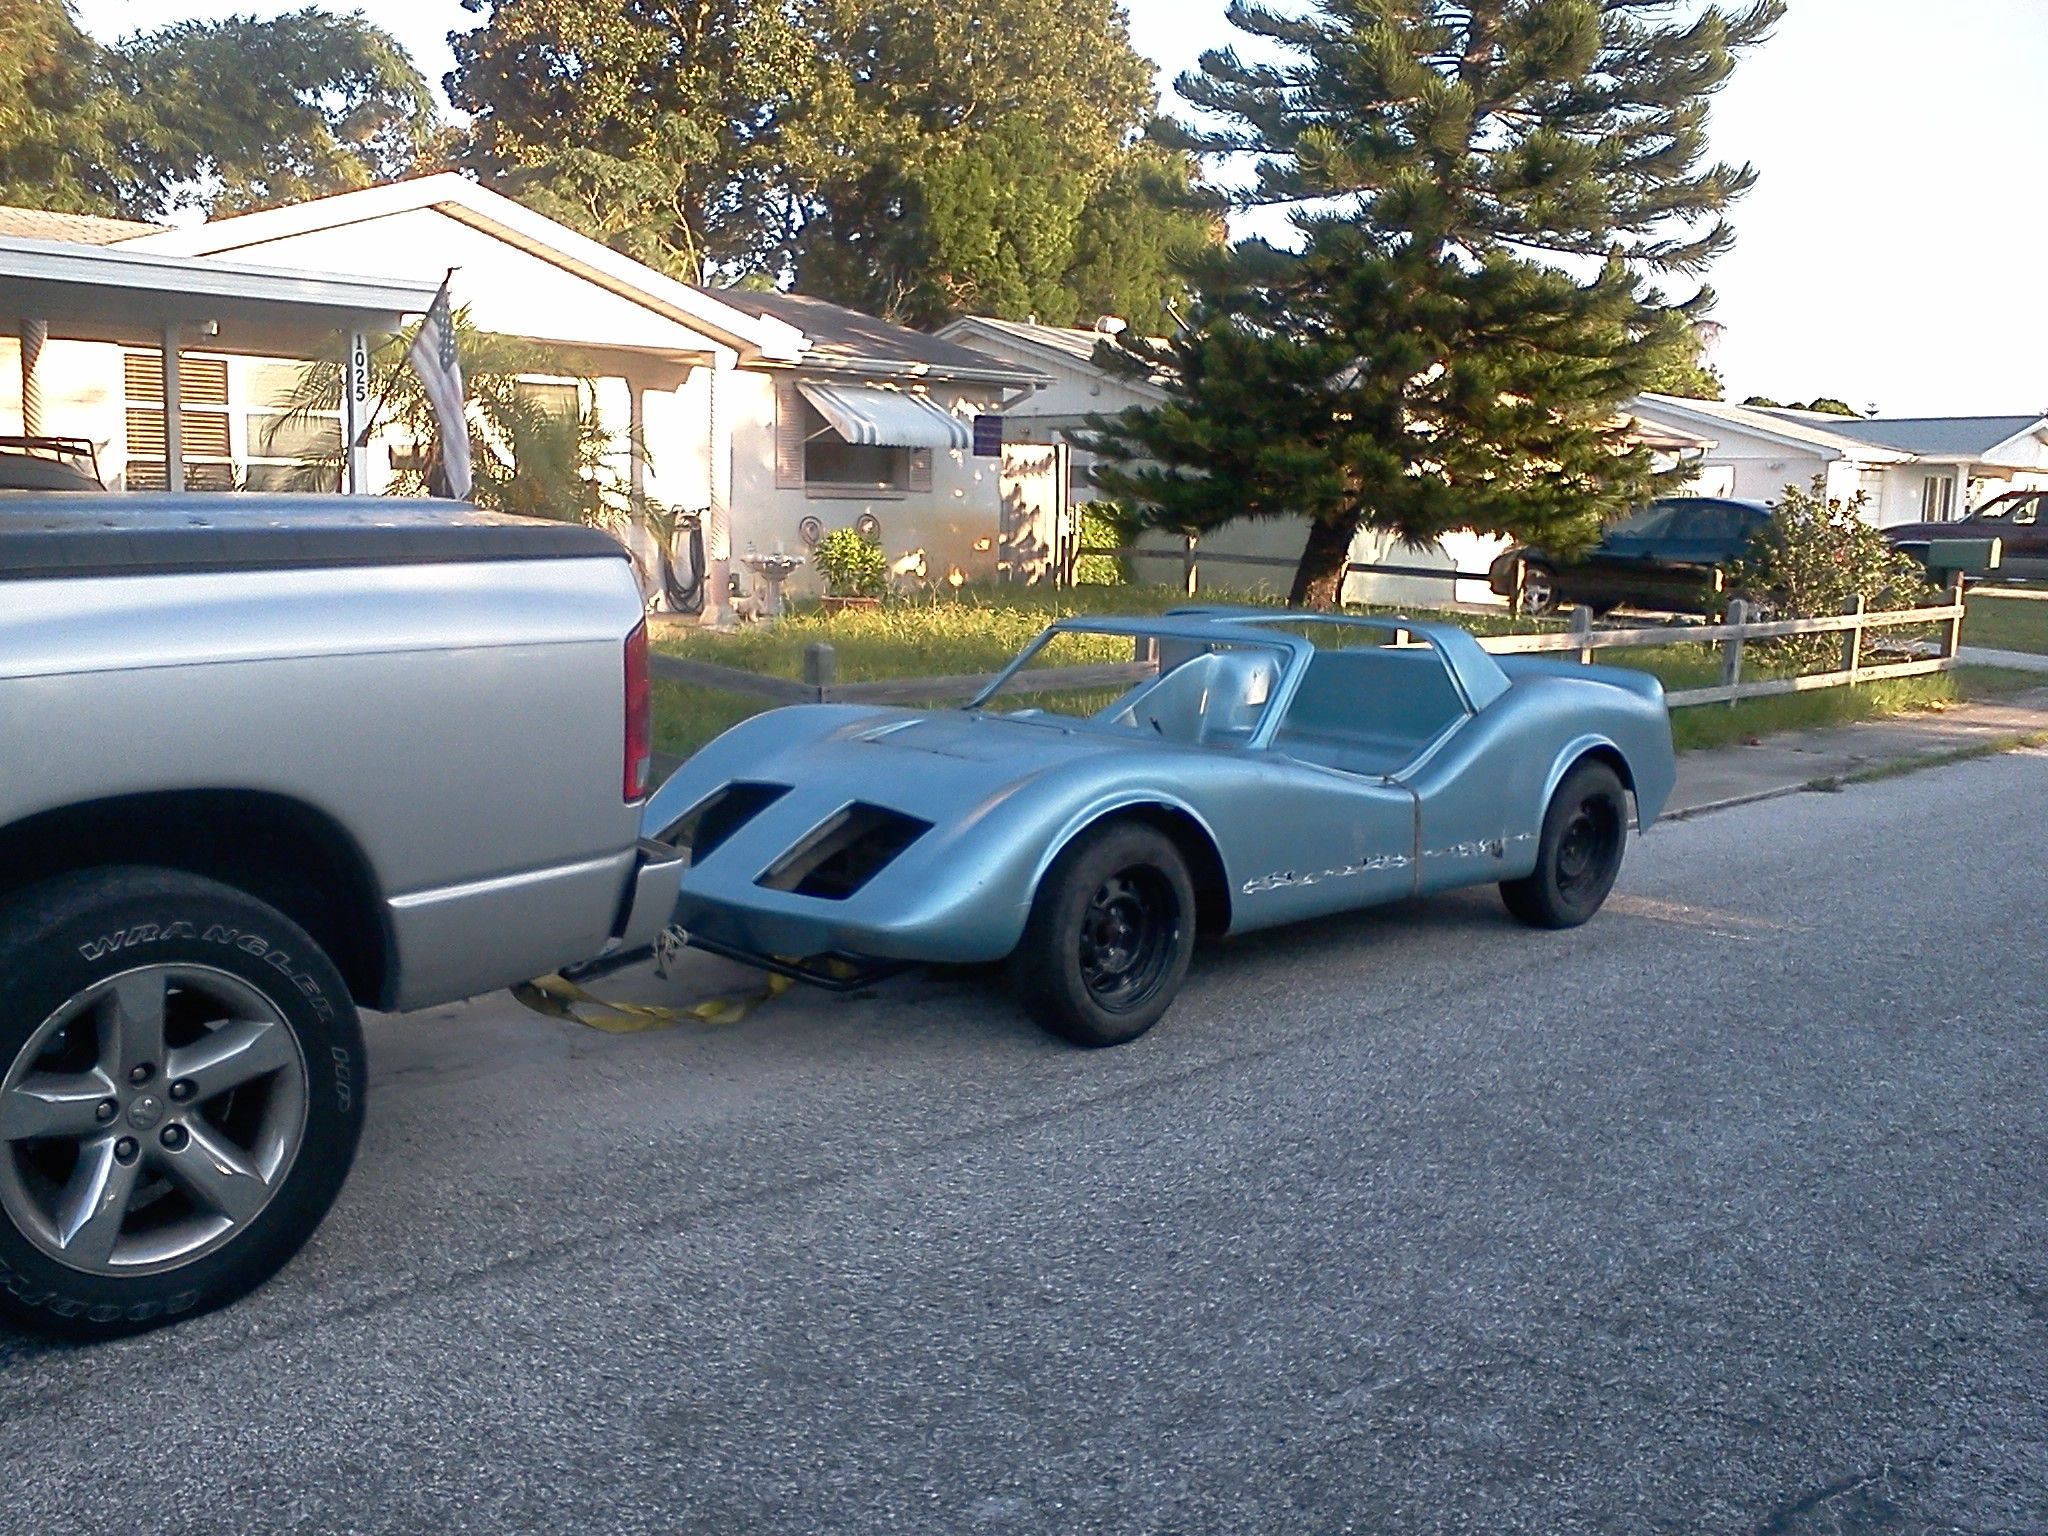 1 Brought Home A Bradley Gt The Other Day Found It On Craigslist Here In The Tampa Bay Area Bought Primarily For The Motor An Tampa Bay Area Tampa Bay Tampa